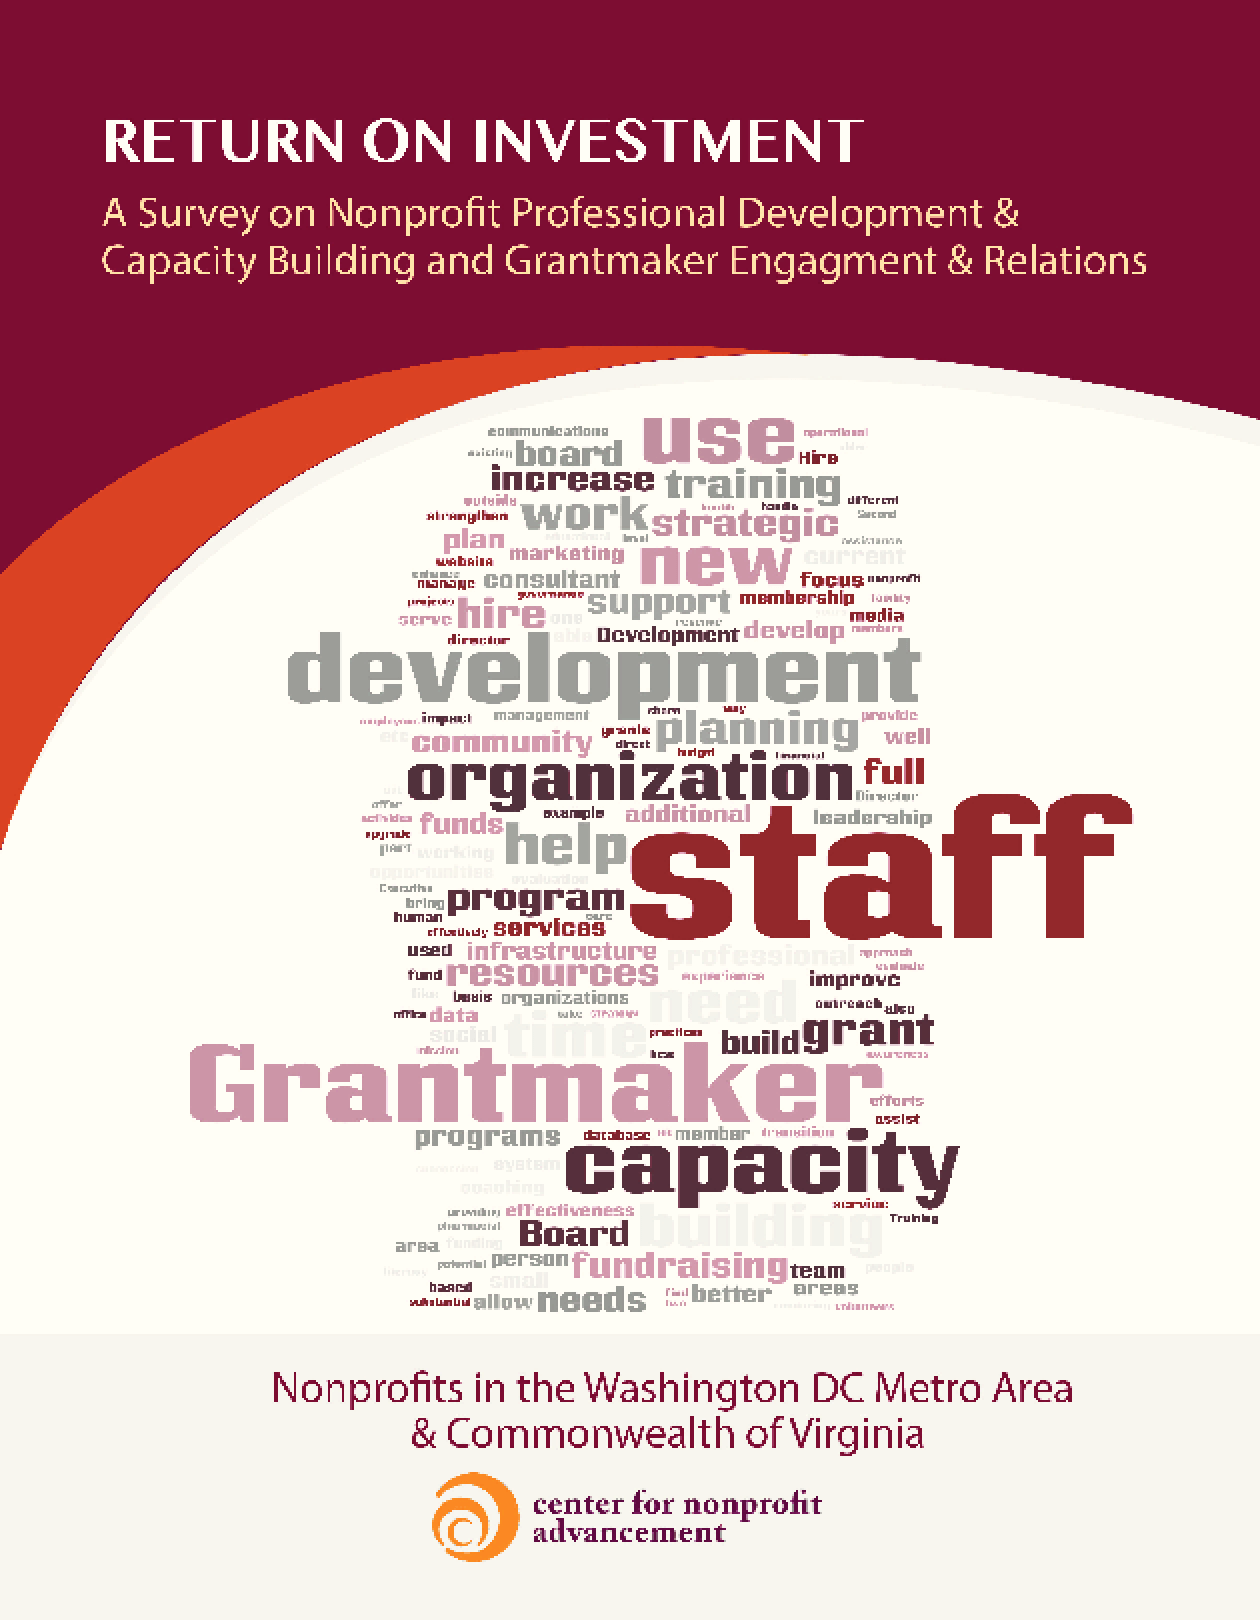 Return on Investment: A Survey on Nonprofit Professional Development & Capacity Building and Grantmaking Engagement & Relations